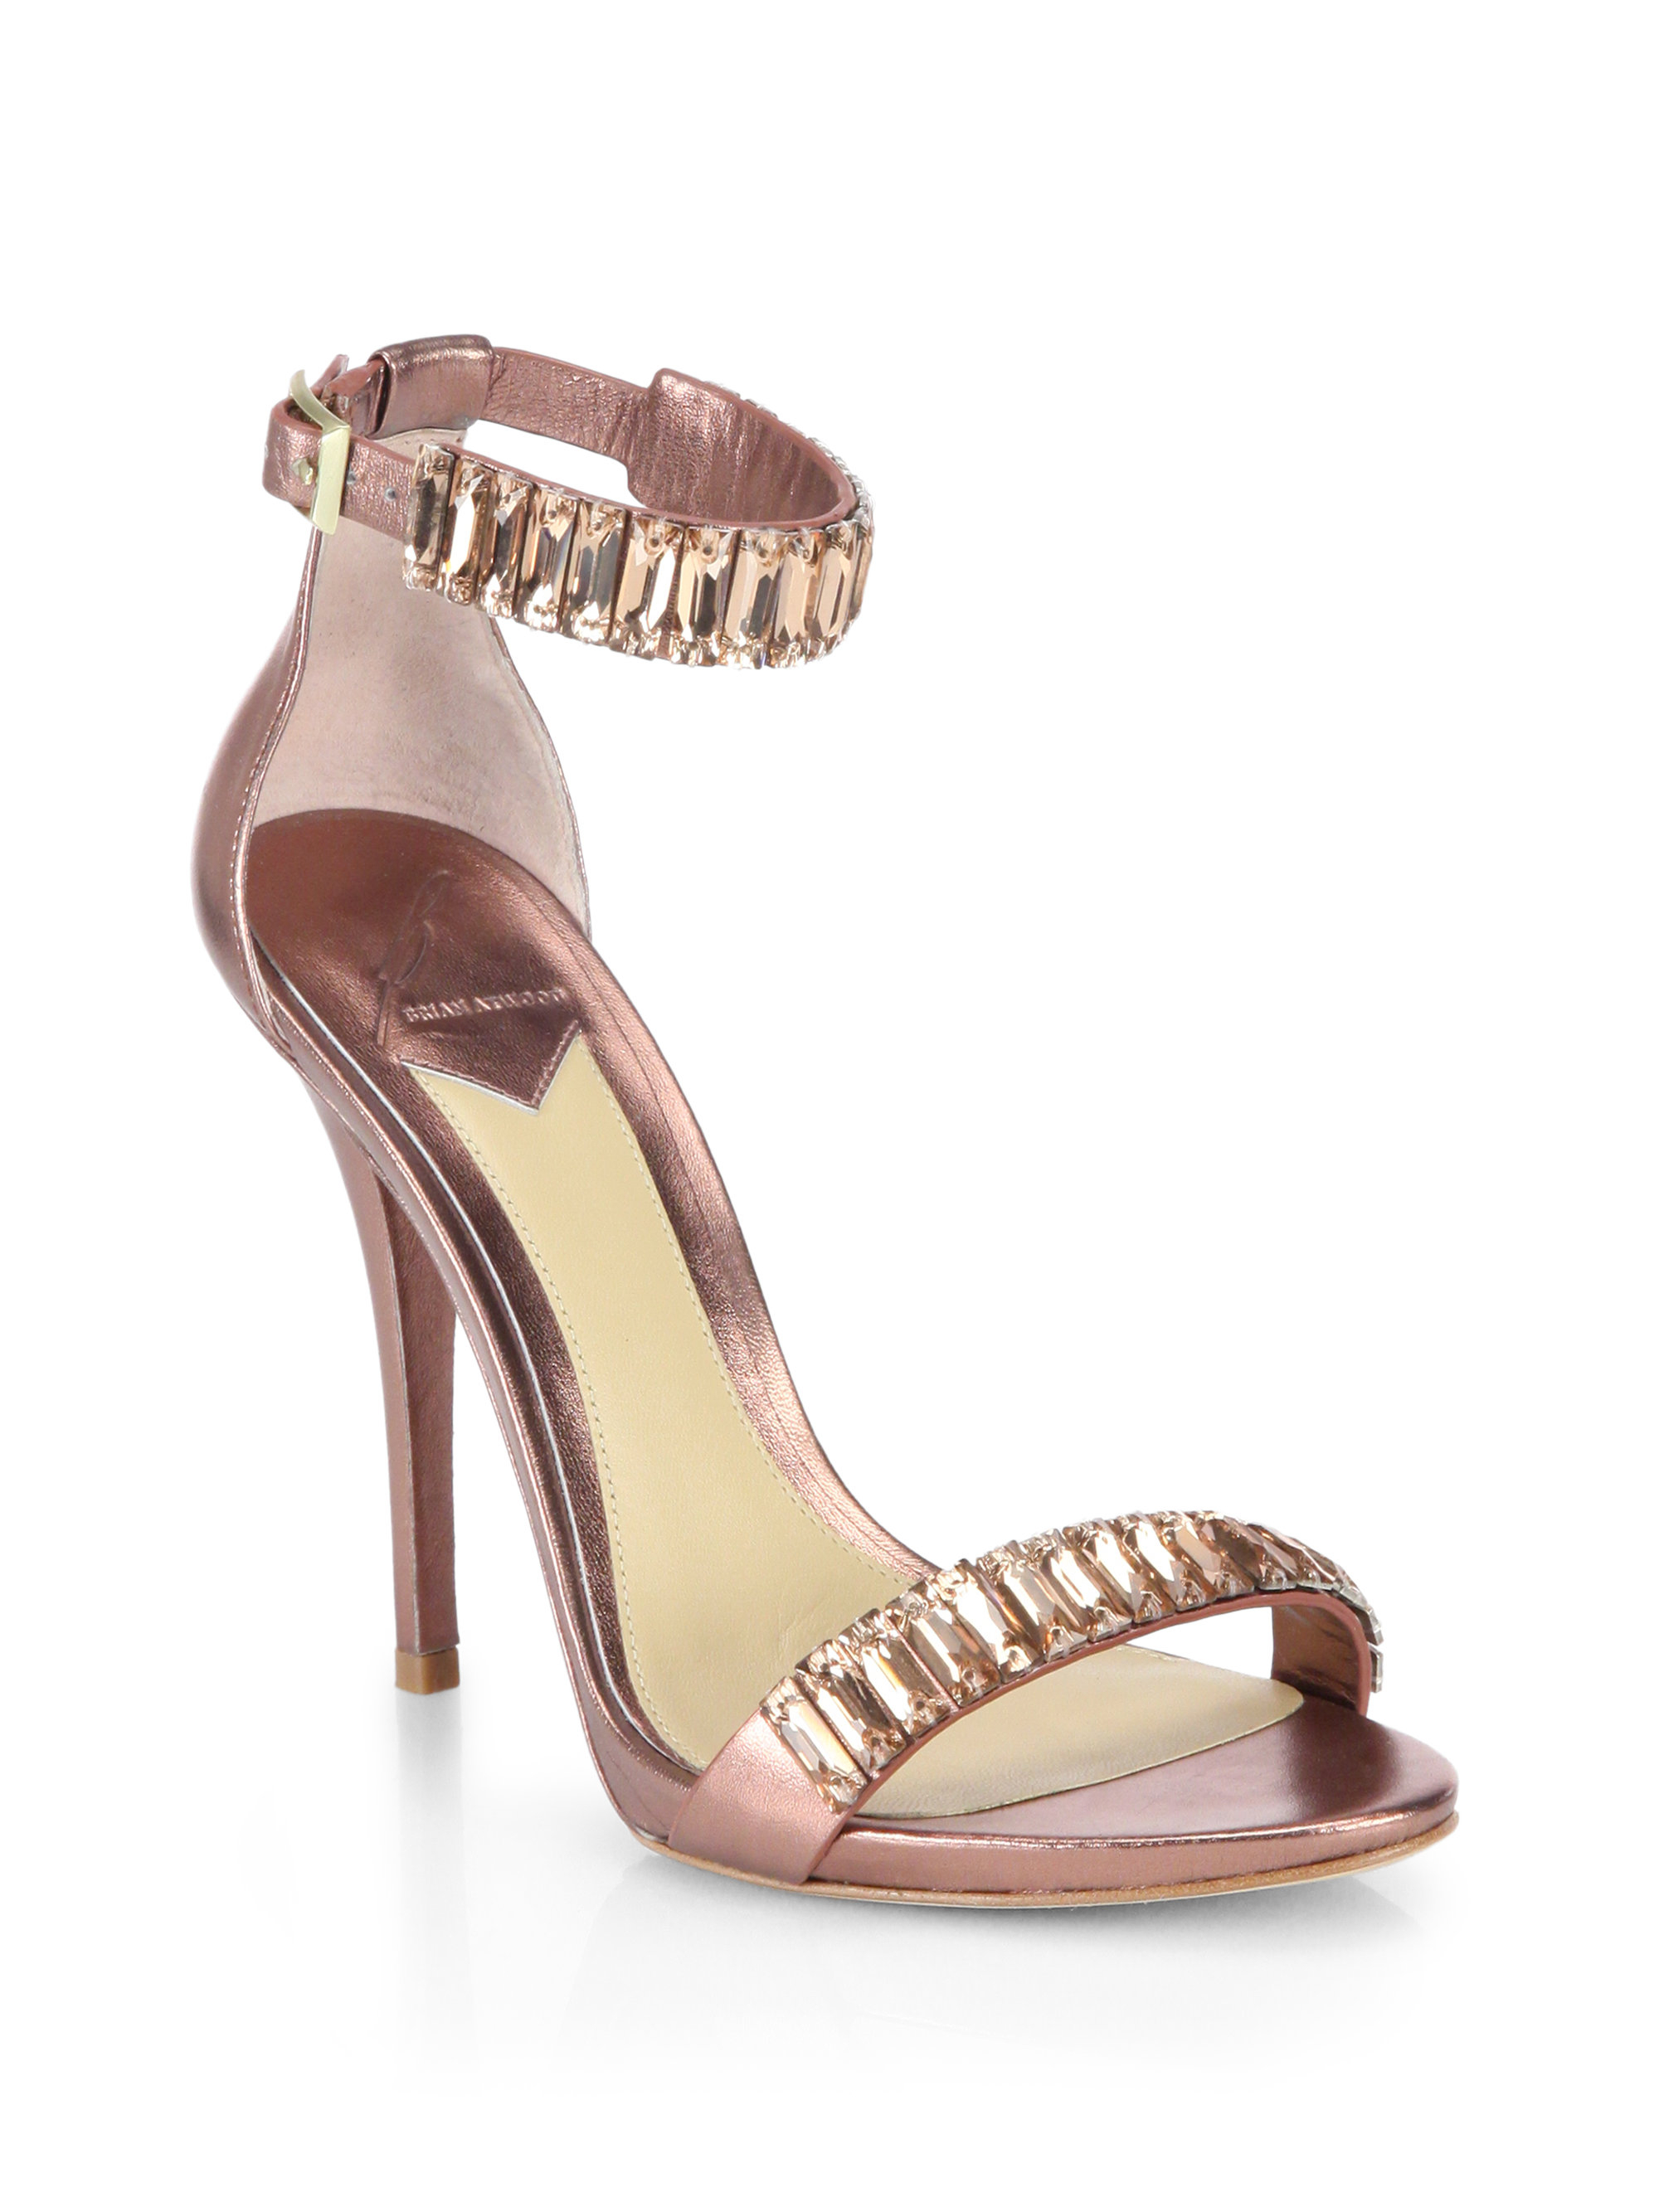 B Brian Atwood Ciara Crystal Amp Metallic Leather Sandals In